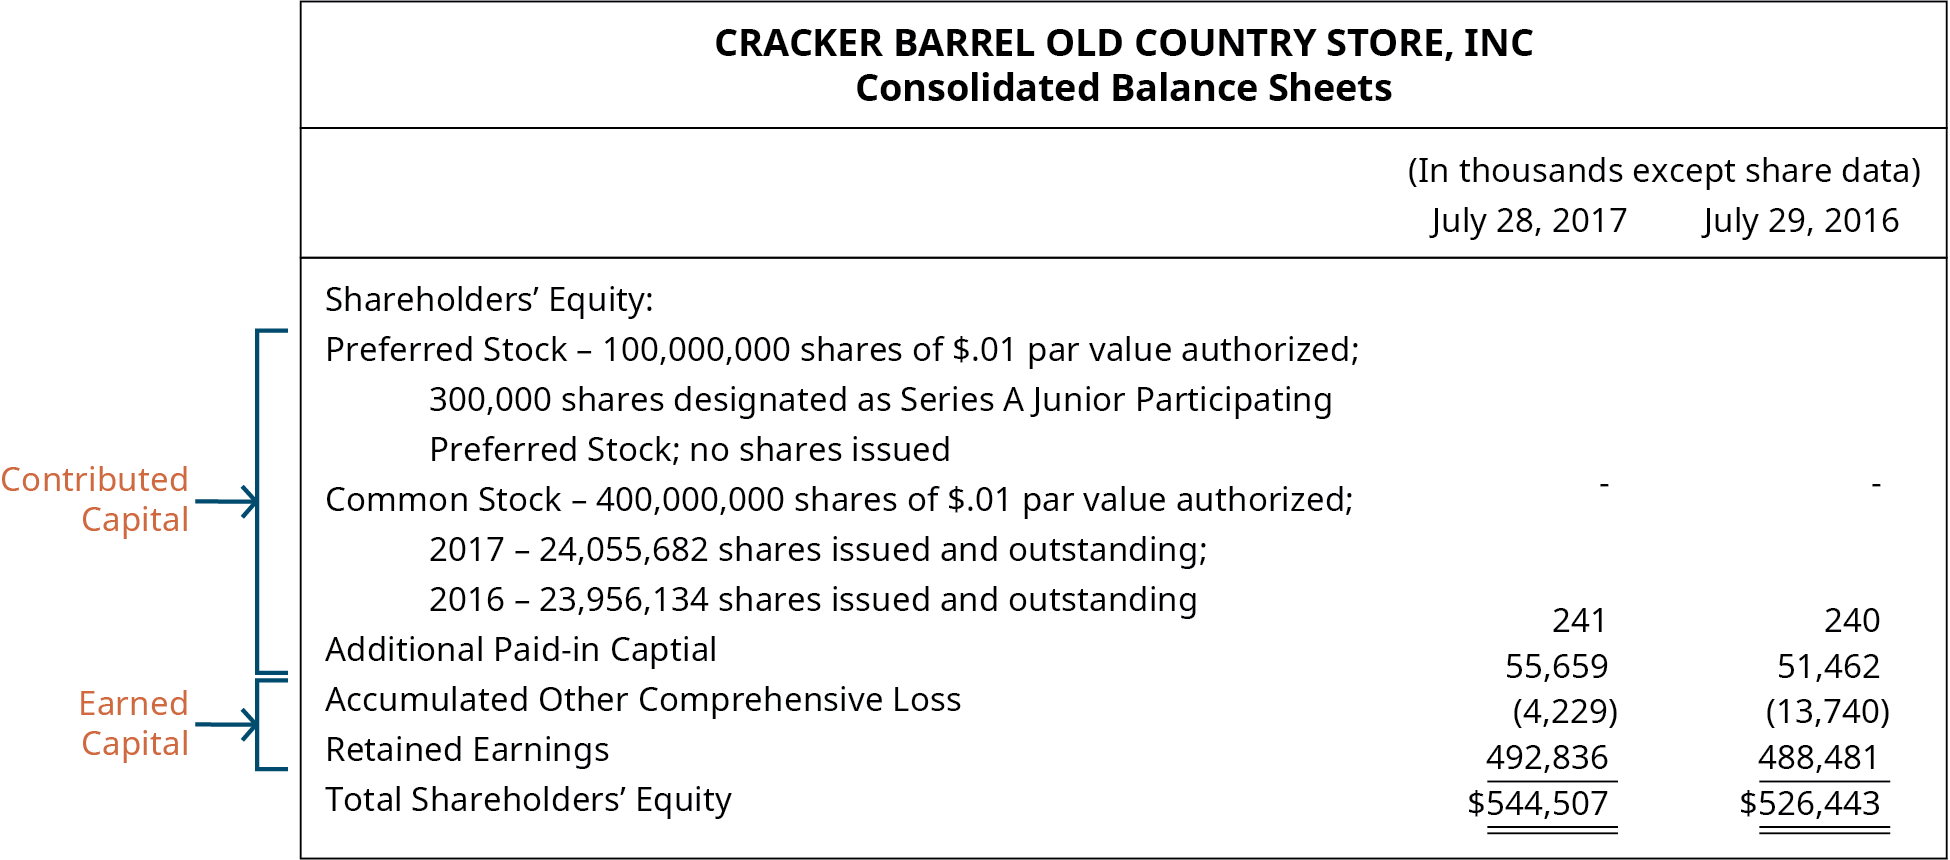 Cracker Barrel Old Country Store, Inc, Consolidated Balance Sheets. (In thousands except share data) July 28, 2017 and July 29, 2016, respectively: Shareholders' Equity: Preferred Stock – 100,000,000 shares of $.01 par value authorized; 300,000 shares designated as Series A Junior Participating Preferred Stock; no shares issued. Common stock – 400,000,000 shares of $.01 par value authorized; 2017 – 24,055,682 shares issued and outstanding; 2016 – 23,956,134 shares issued and outstanding 241, 240. Additional paid-in capital 55,659, 51,462. Accumulated other comprehensive loss (4,220), (13,740). Retained earnings 492,836, 488,481. Total shareholders' equity 544,507, 526,443. A bracket around the Preferred stock, Common stock, and Additional paid-in capital indicates that they make up the contributed capital. A bracket around the Accumulated other comprehensive loss and the Retained earnings indicates that they make up the earned capital.